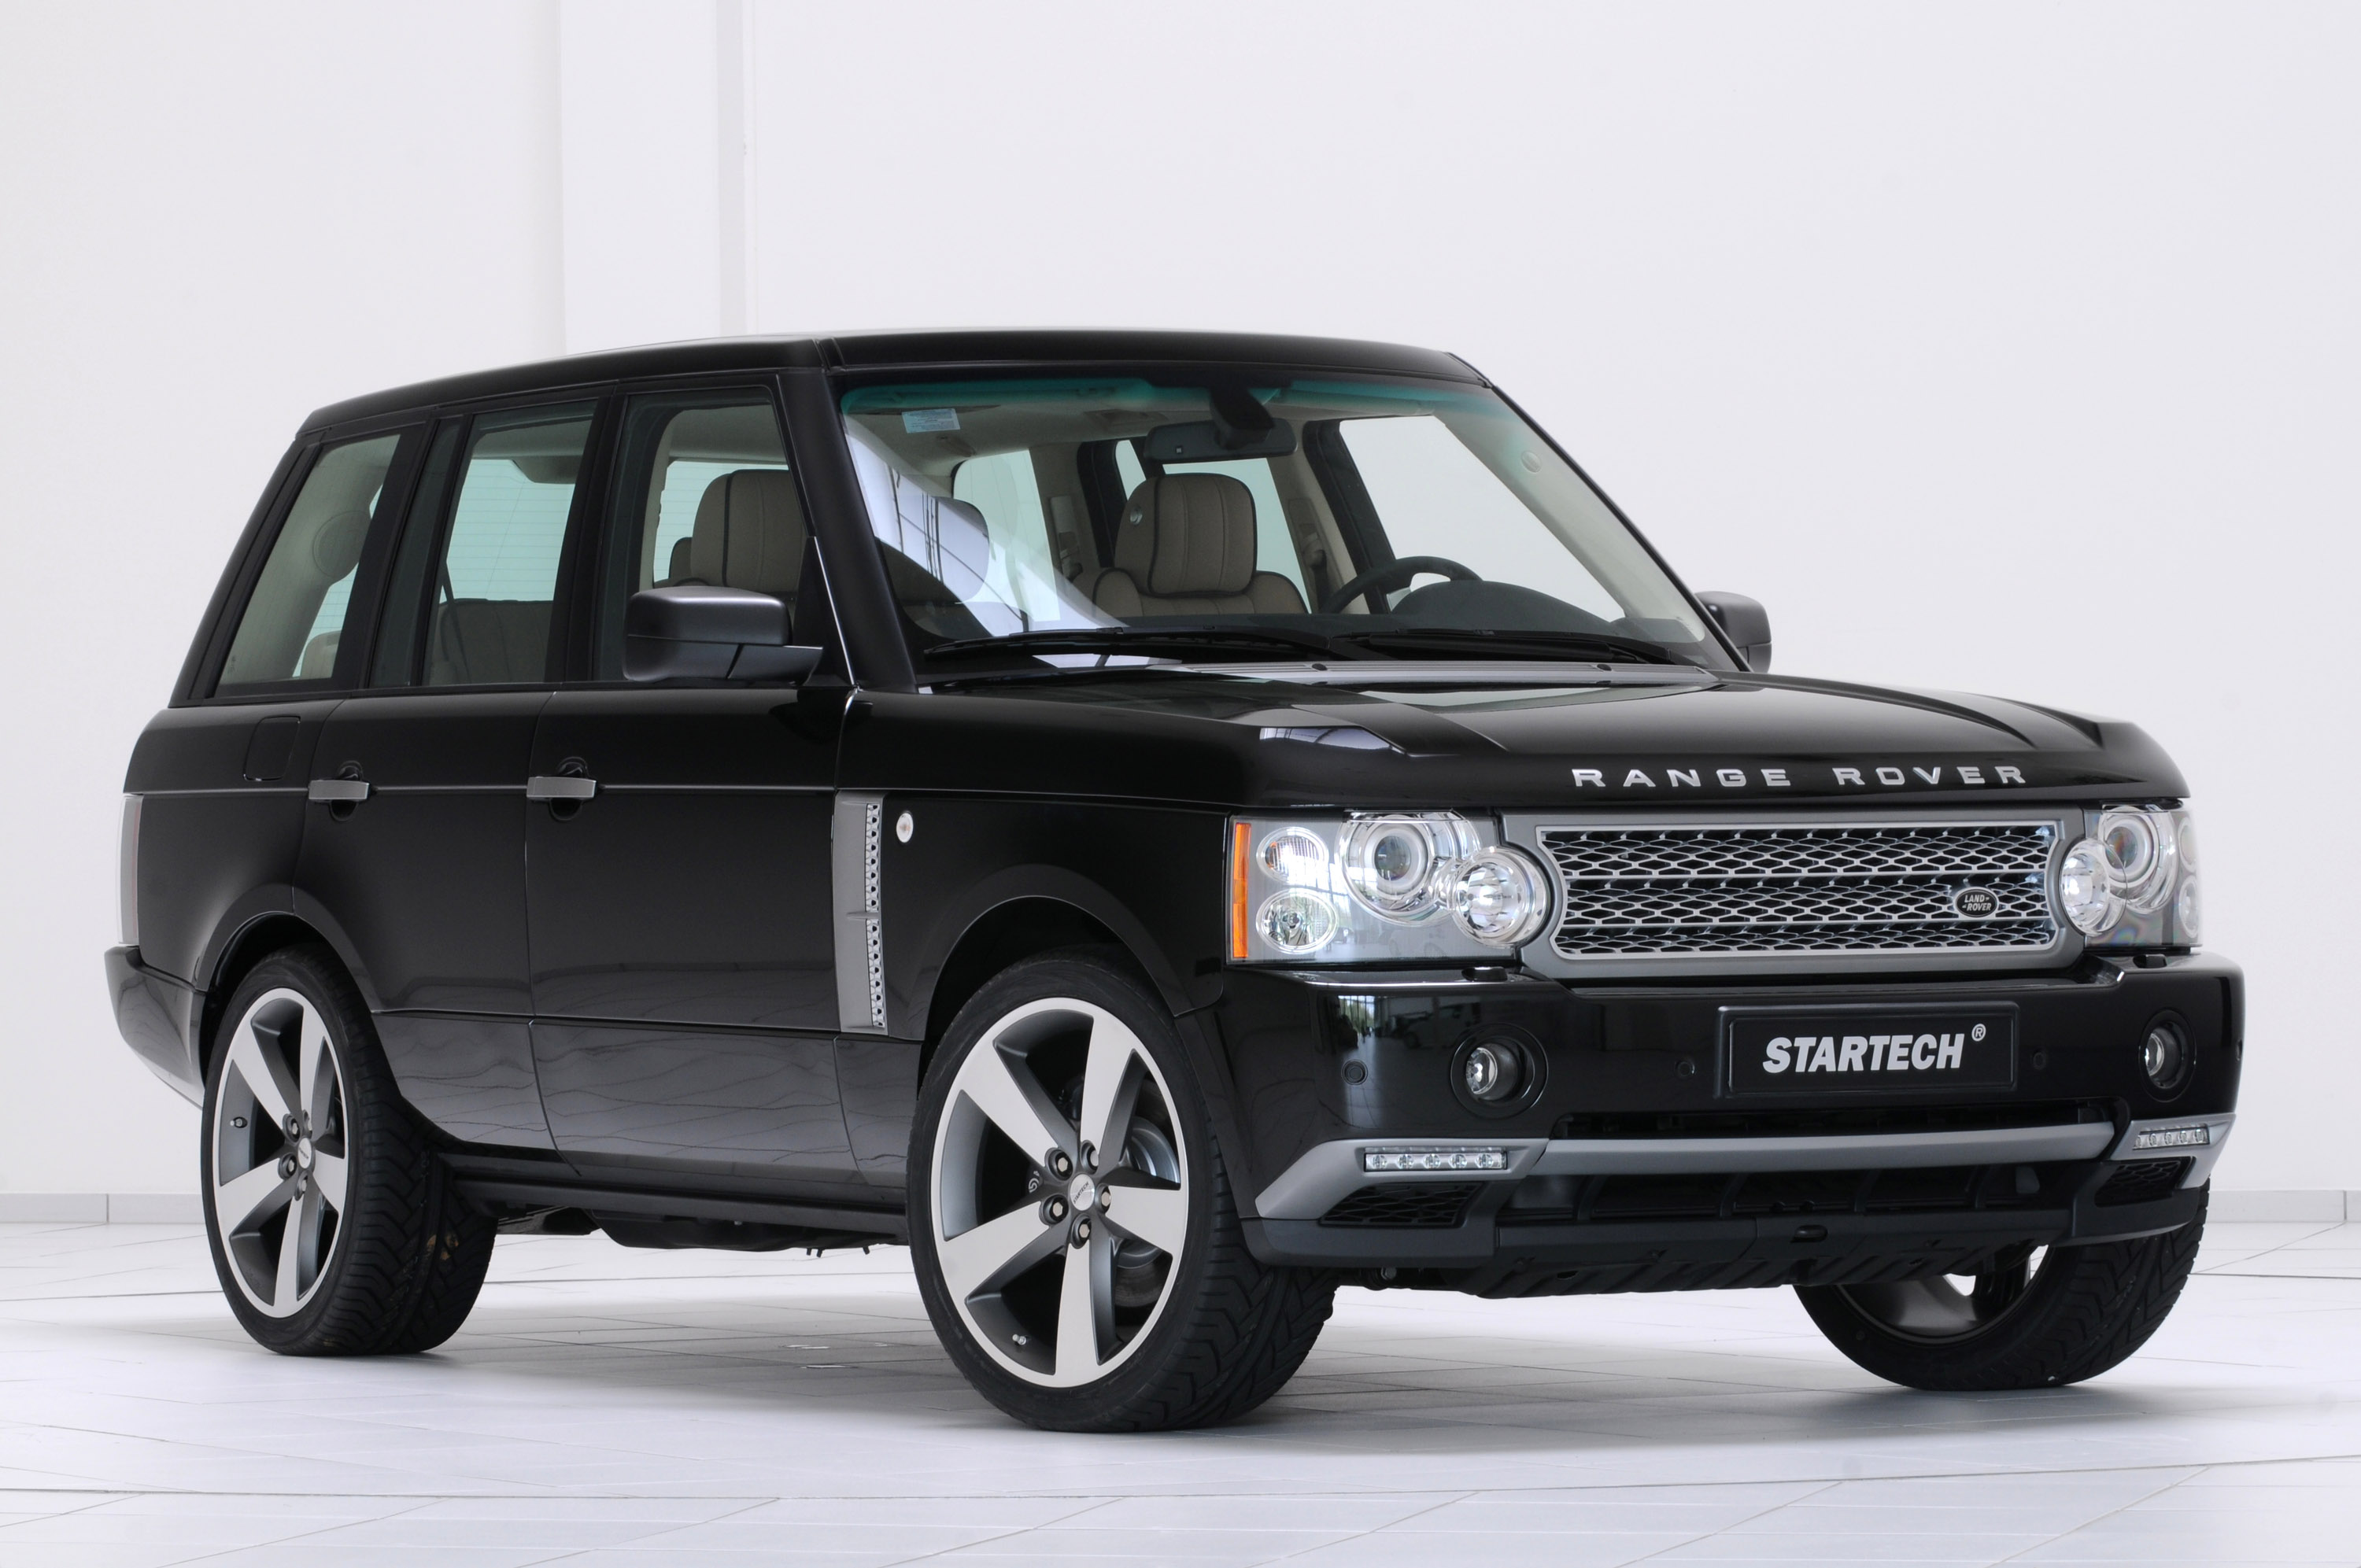 Startech Range Rover reviews High Resolution Image Wallpapers Download